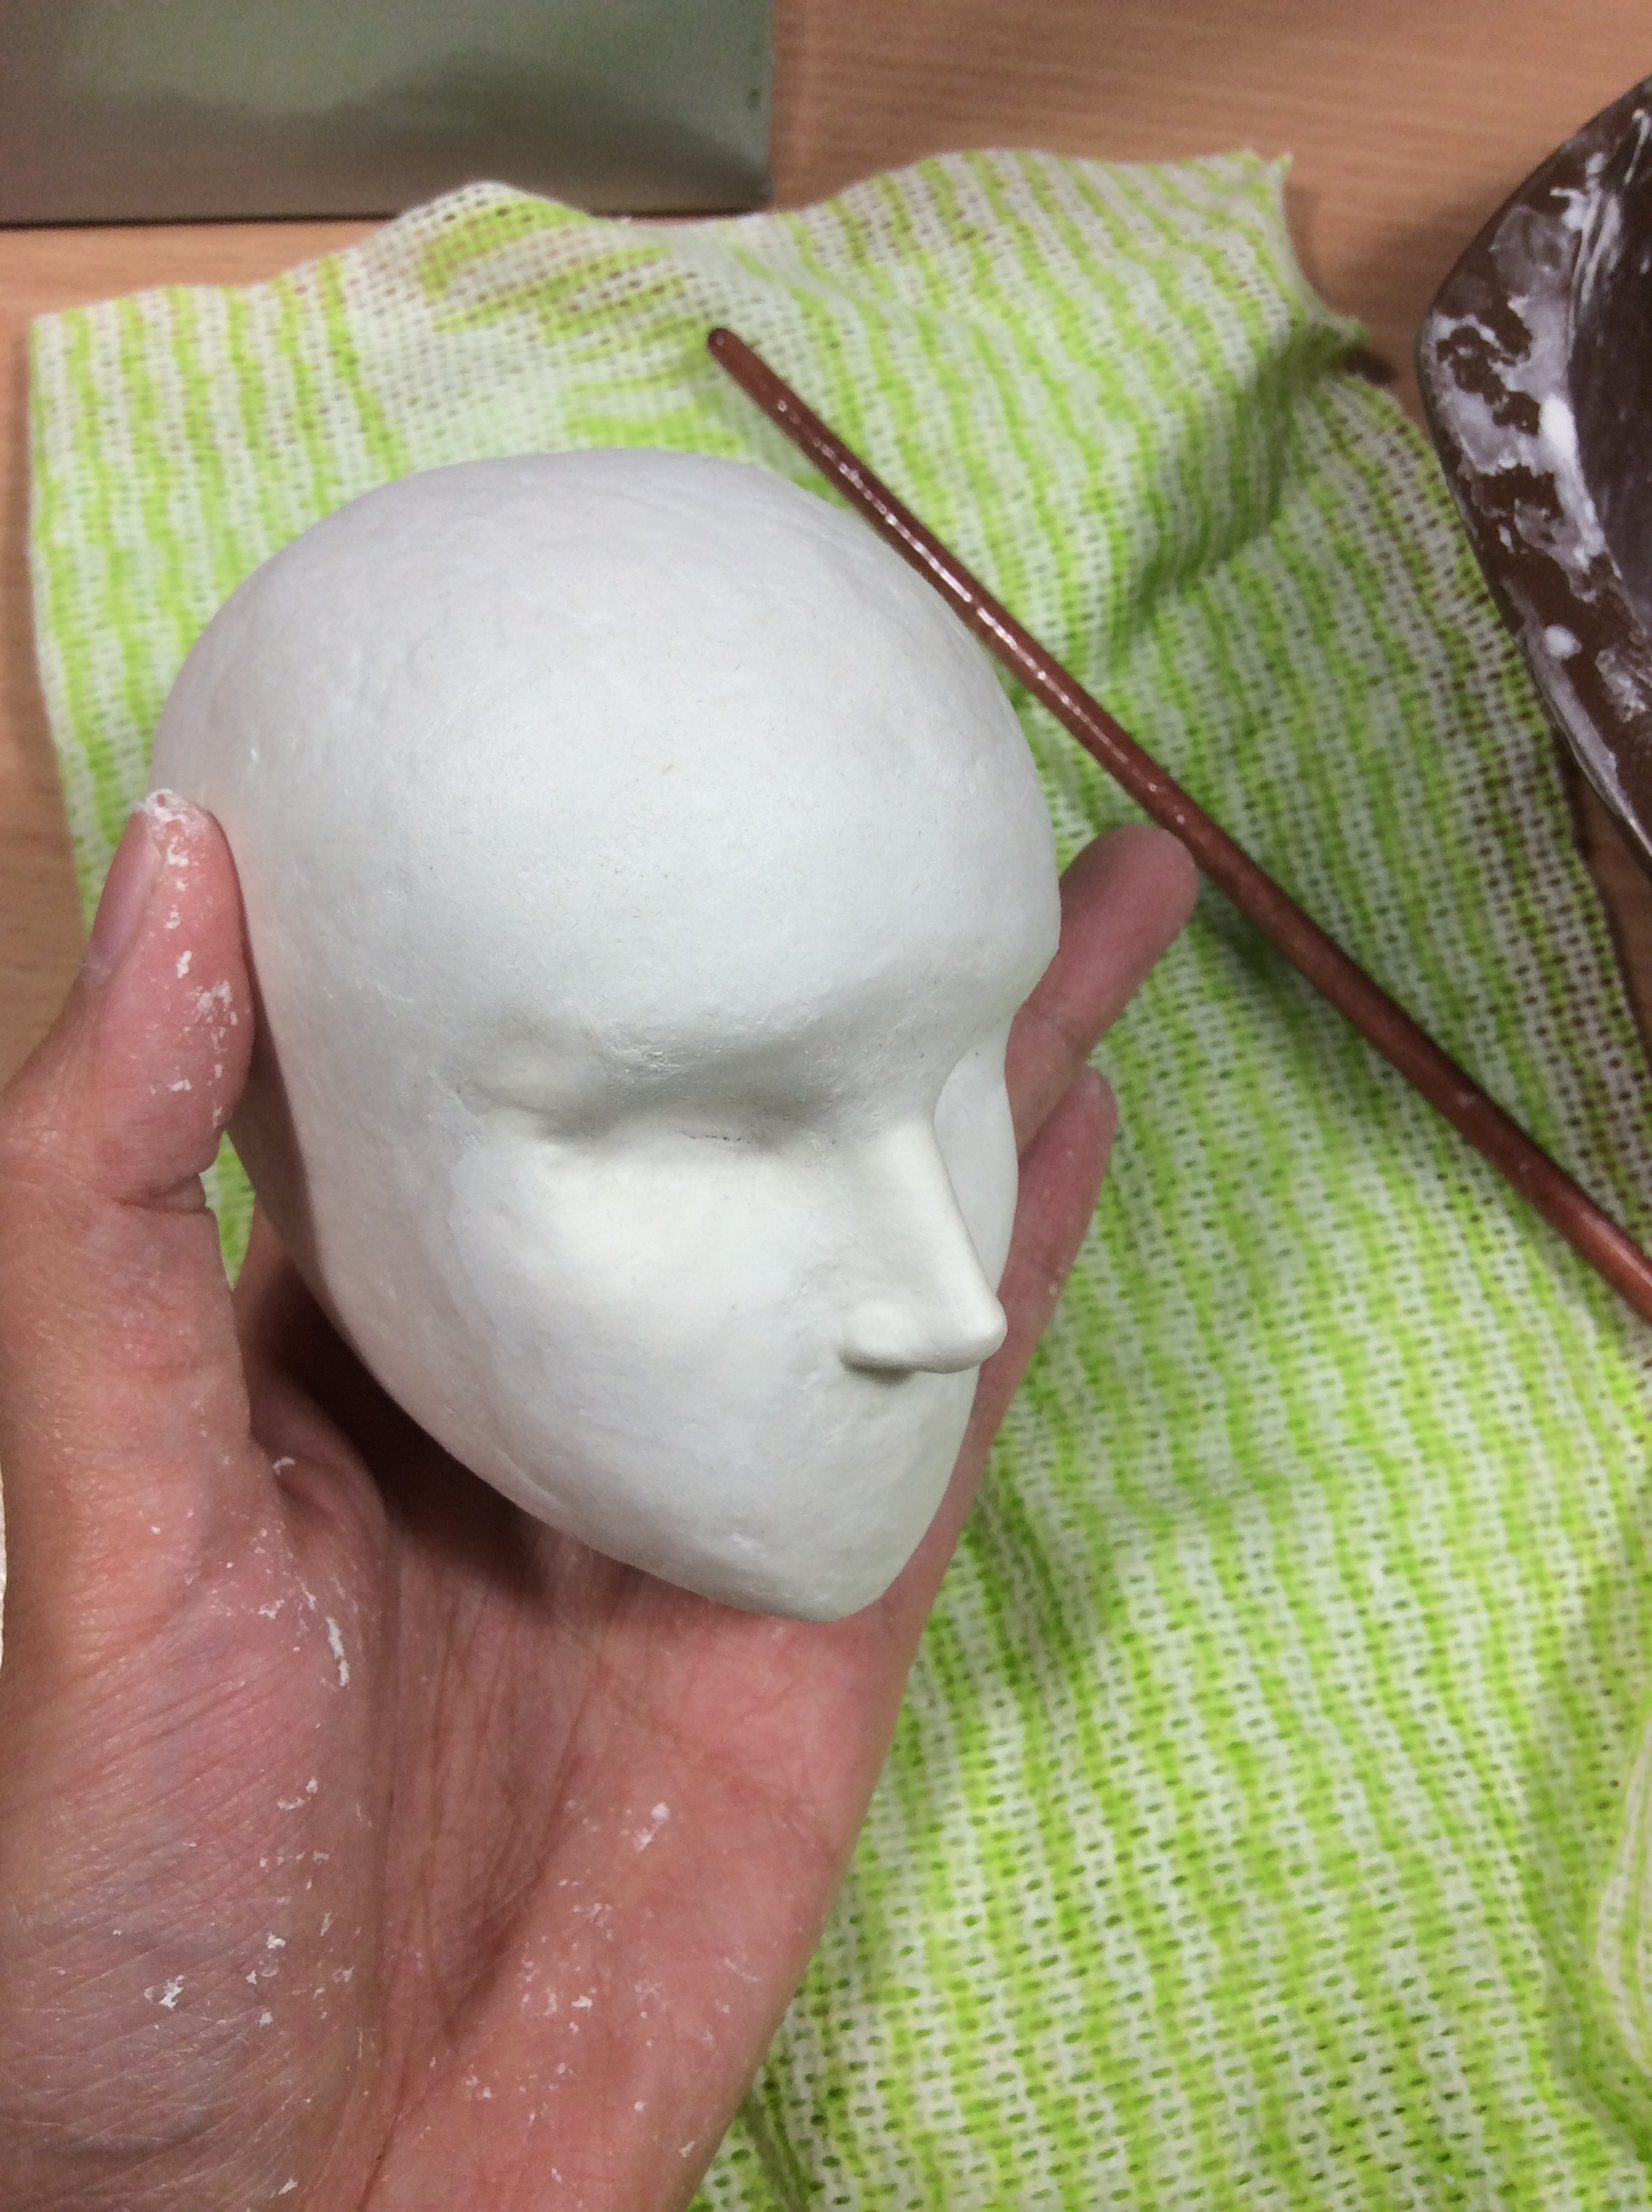 jemse---my-first-doll-head-making-progress-diary-part-2_32374200926_o